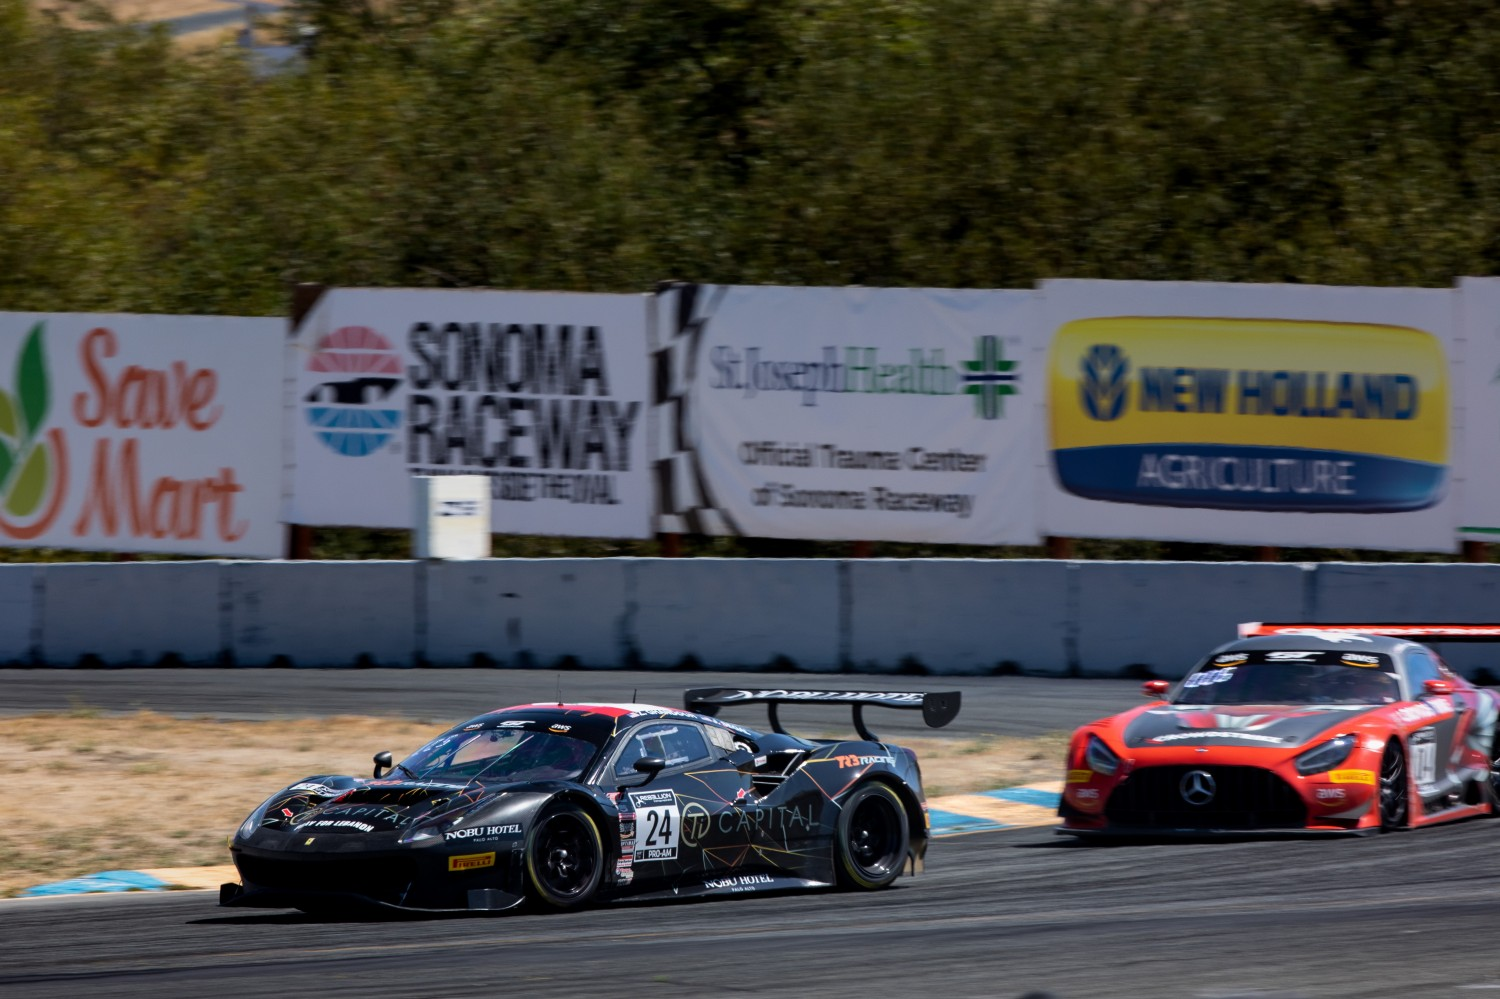 #24 Ferrari 488 GT3 of Ziad Ghondour and Jeff Segal, TR3 Racing, GT3 Pro-Am, SRO America, Sonoma Raceway, Sonoma CA, Aug 2020.  | Regis Lefebure/SRO